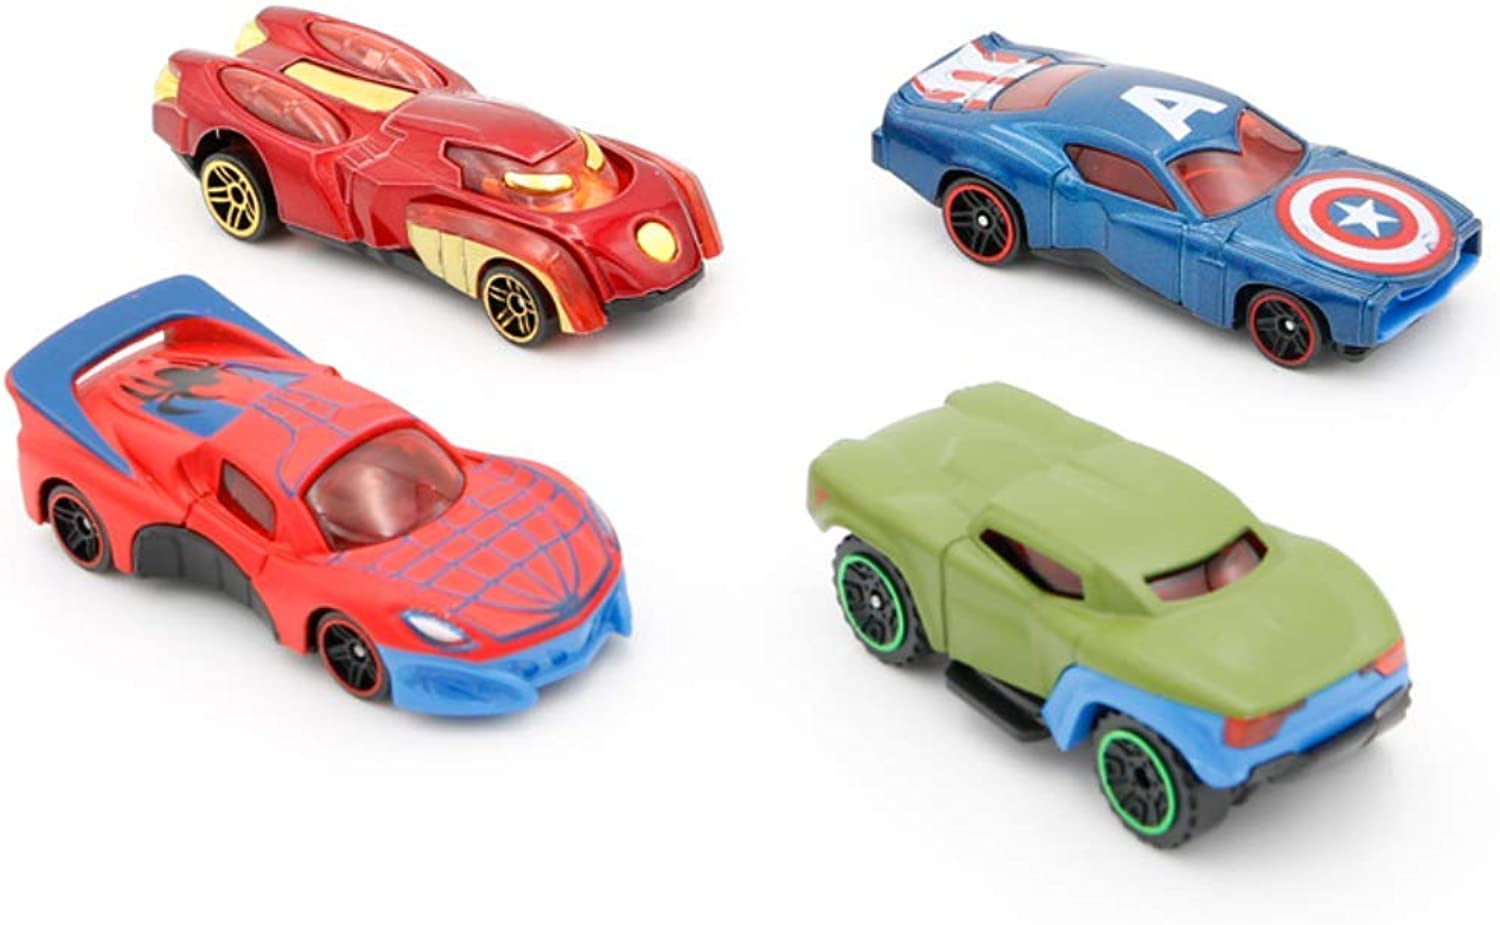 Auch 4-Pack Super Hero Theme Toy Race Cars Roadster Vehicles for Kids Birthday Party Favors Goody Bags